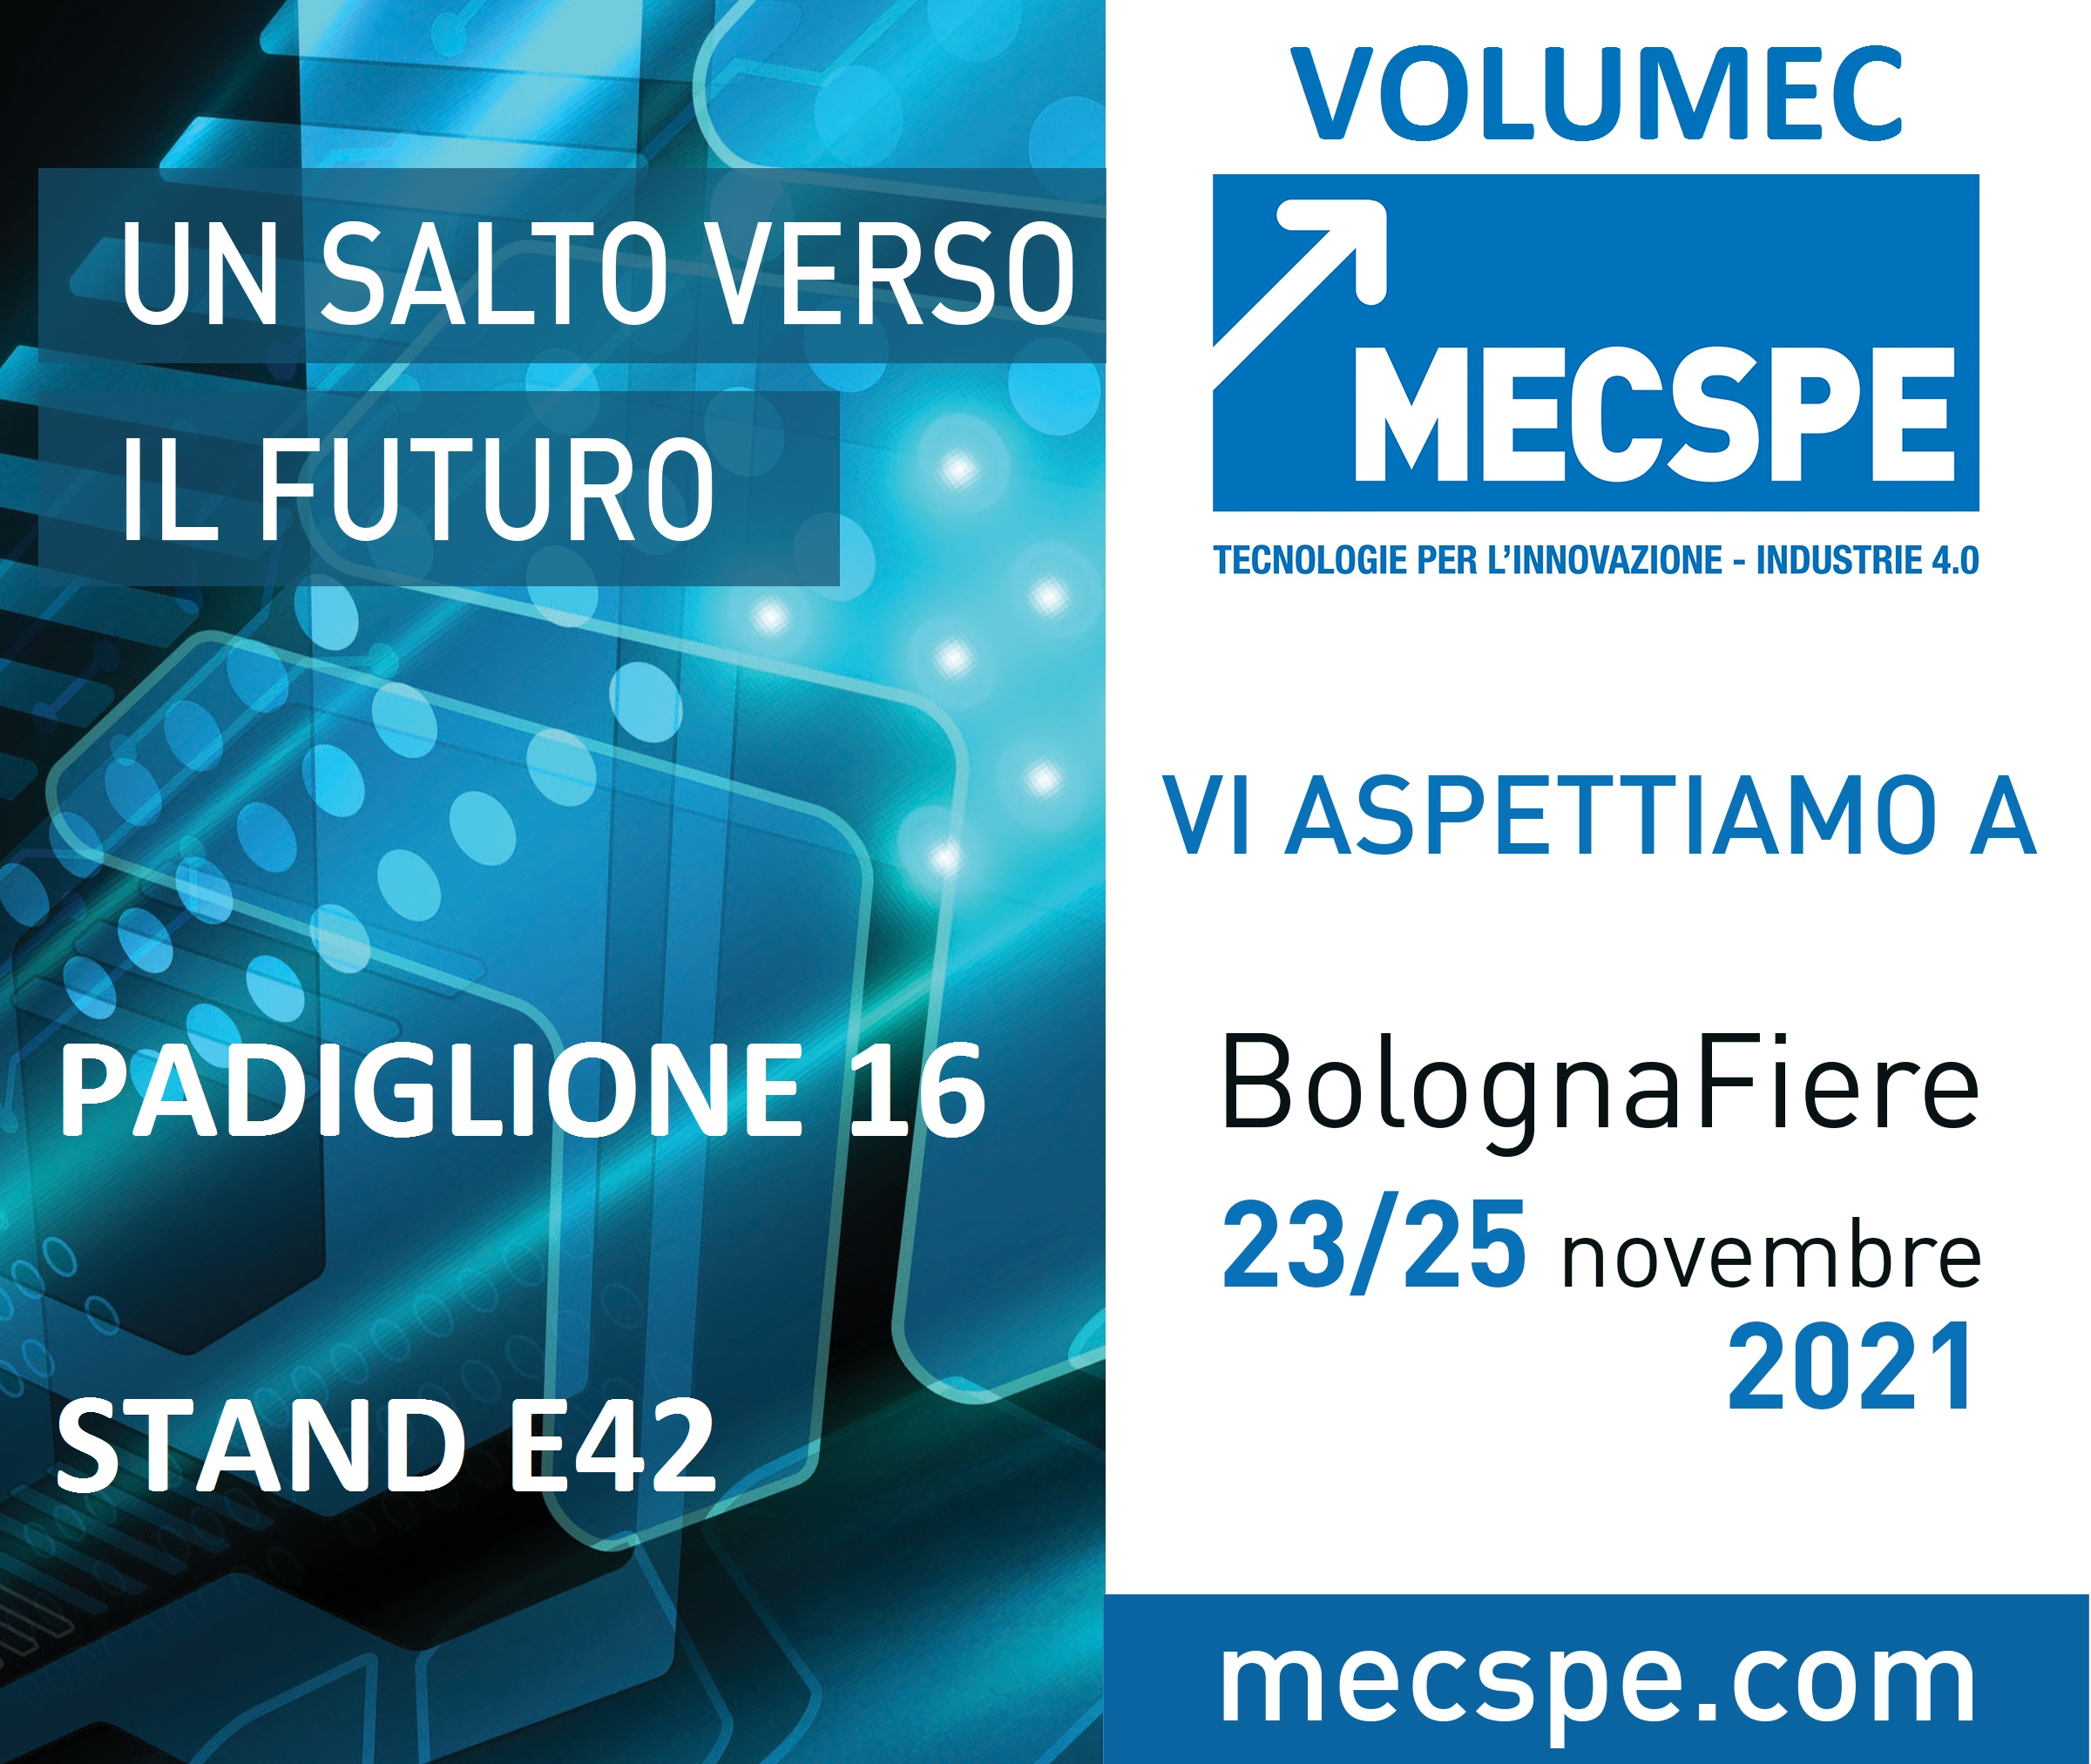 MECSPE -MOTEK 2017 PARMA (ITALY) 23-25 MARCH 2017